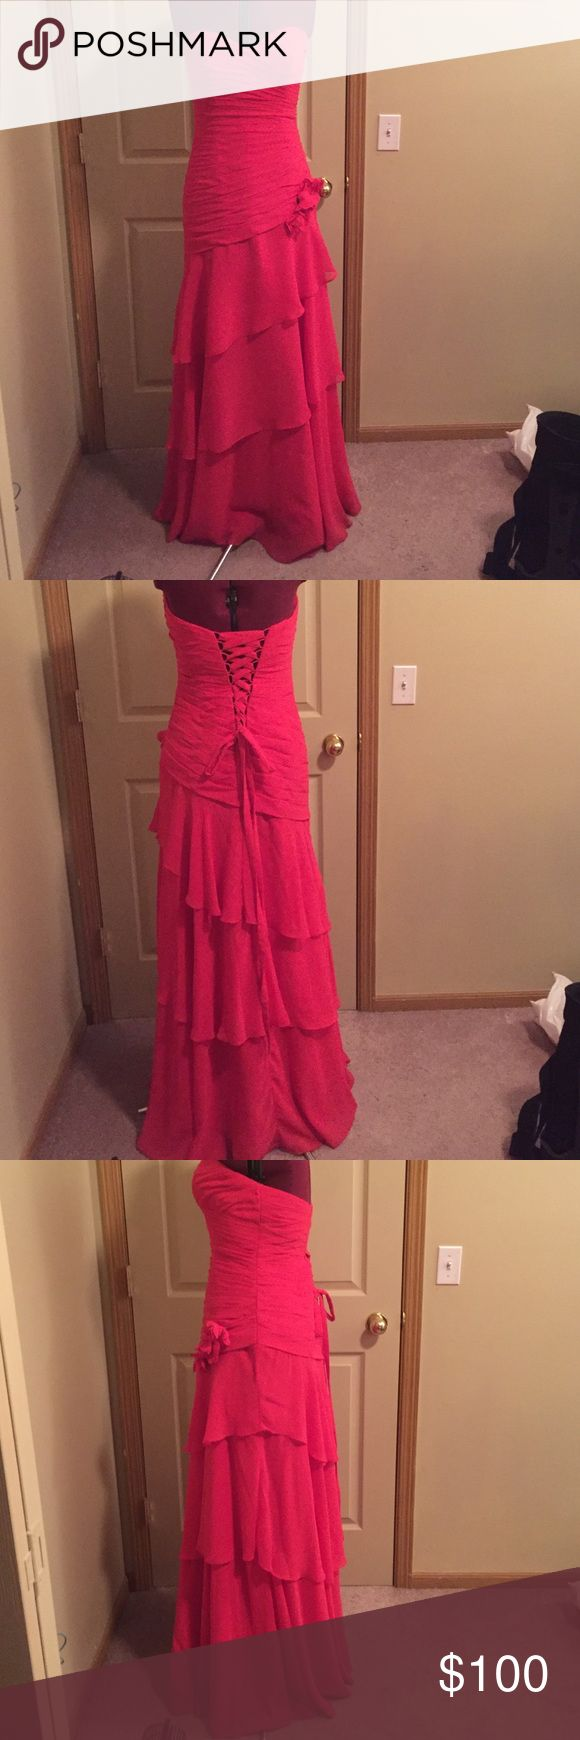 Elegant ball/prom dress Red ball gown, lace up corset is flirty and helps shape your form, and flaunt your curves, only worn once and in perfect condition, listed as size 11 fits more like a 9 Mari Lee Dresses Prom